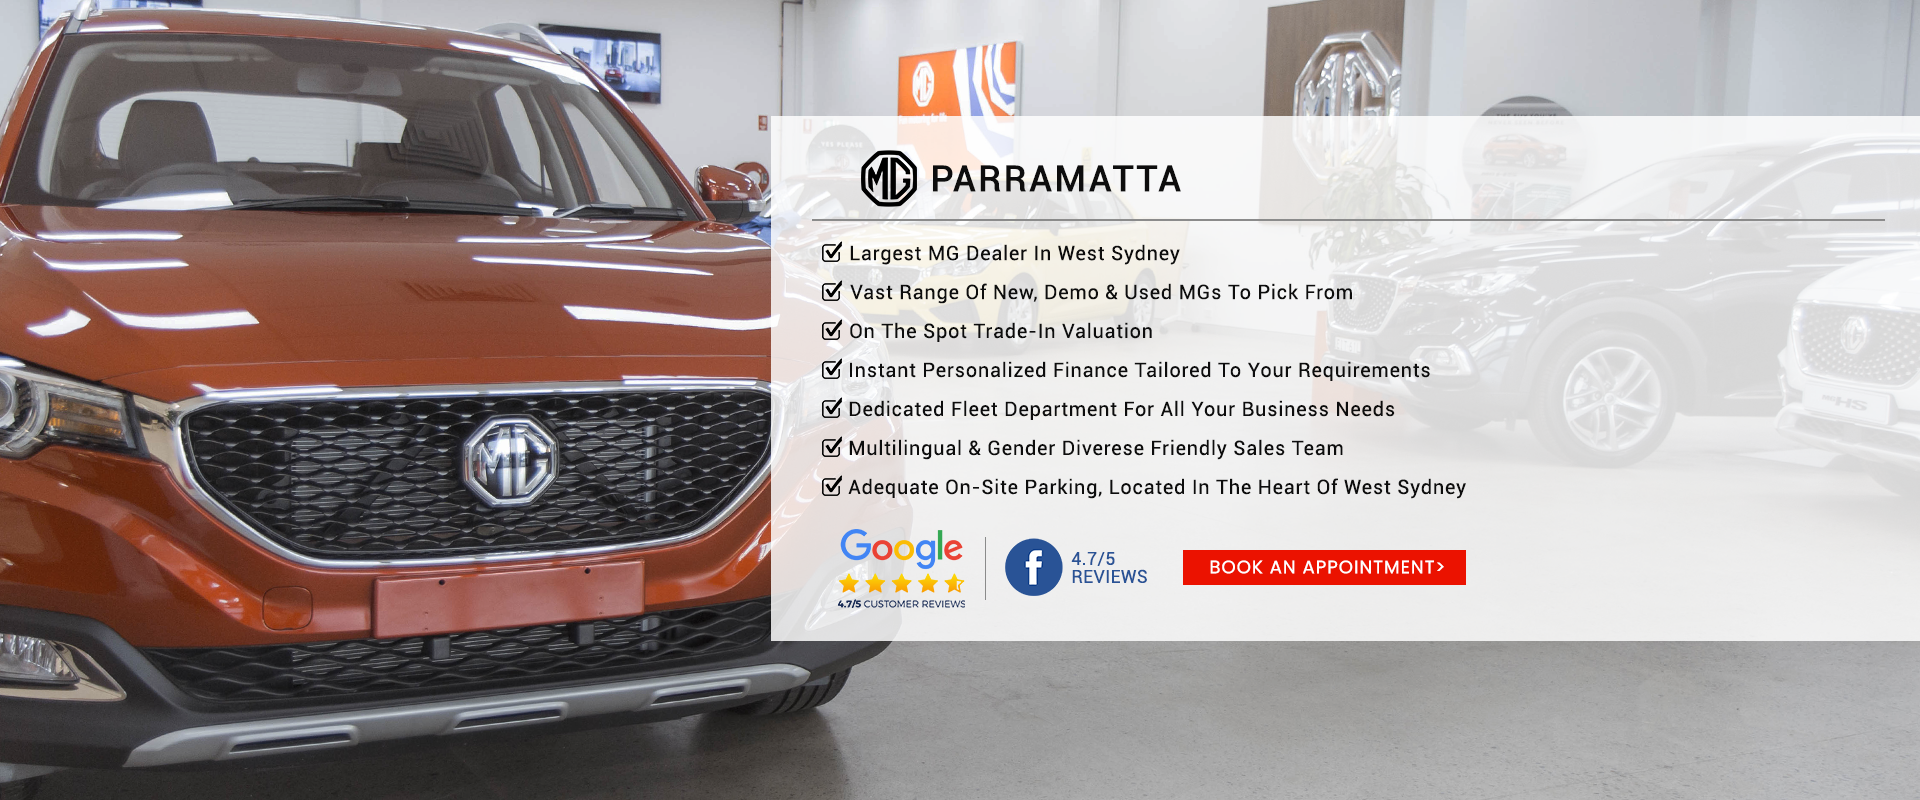 Parramatta MG Dealer